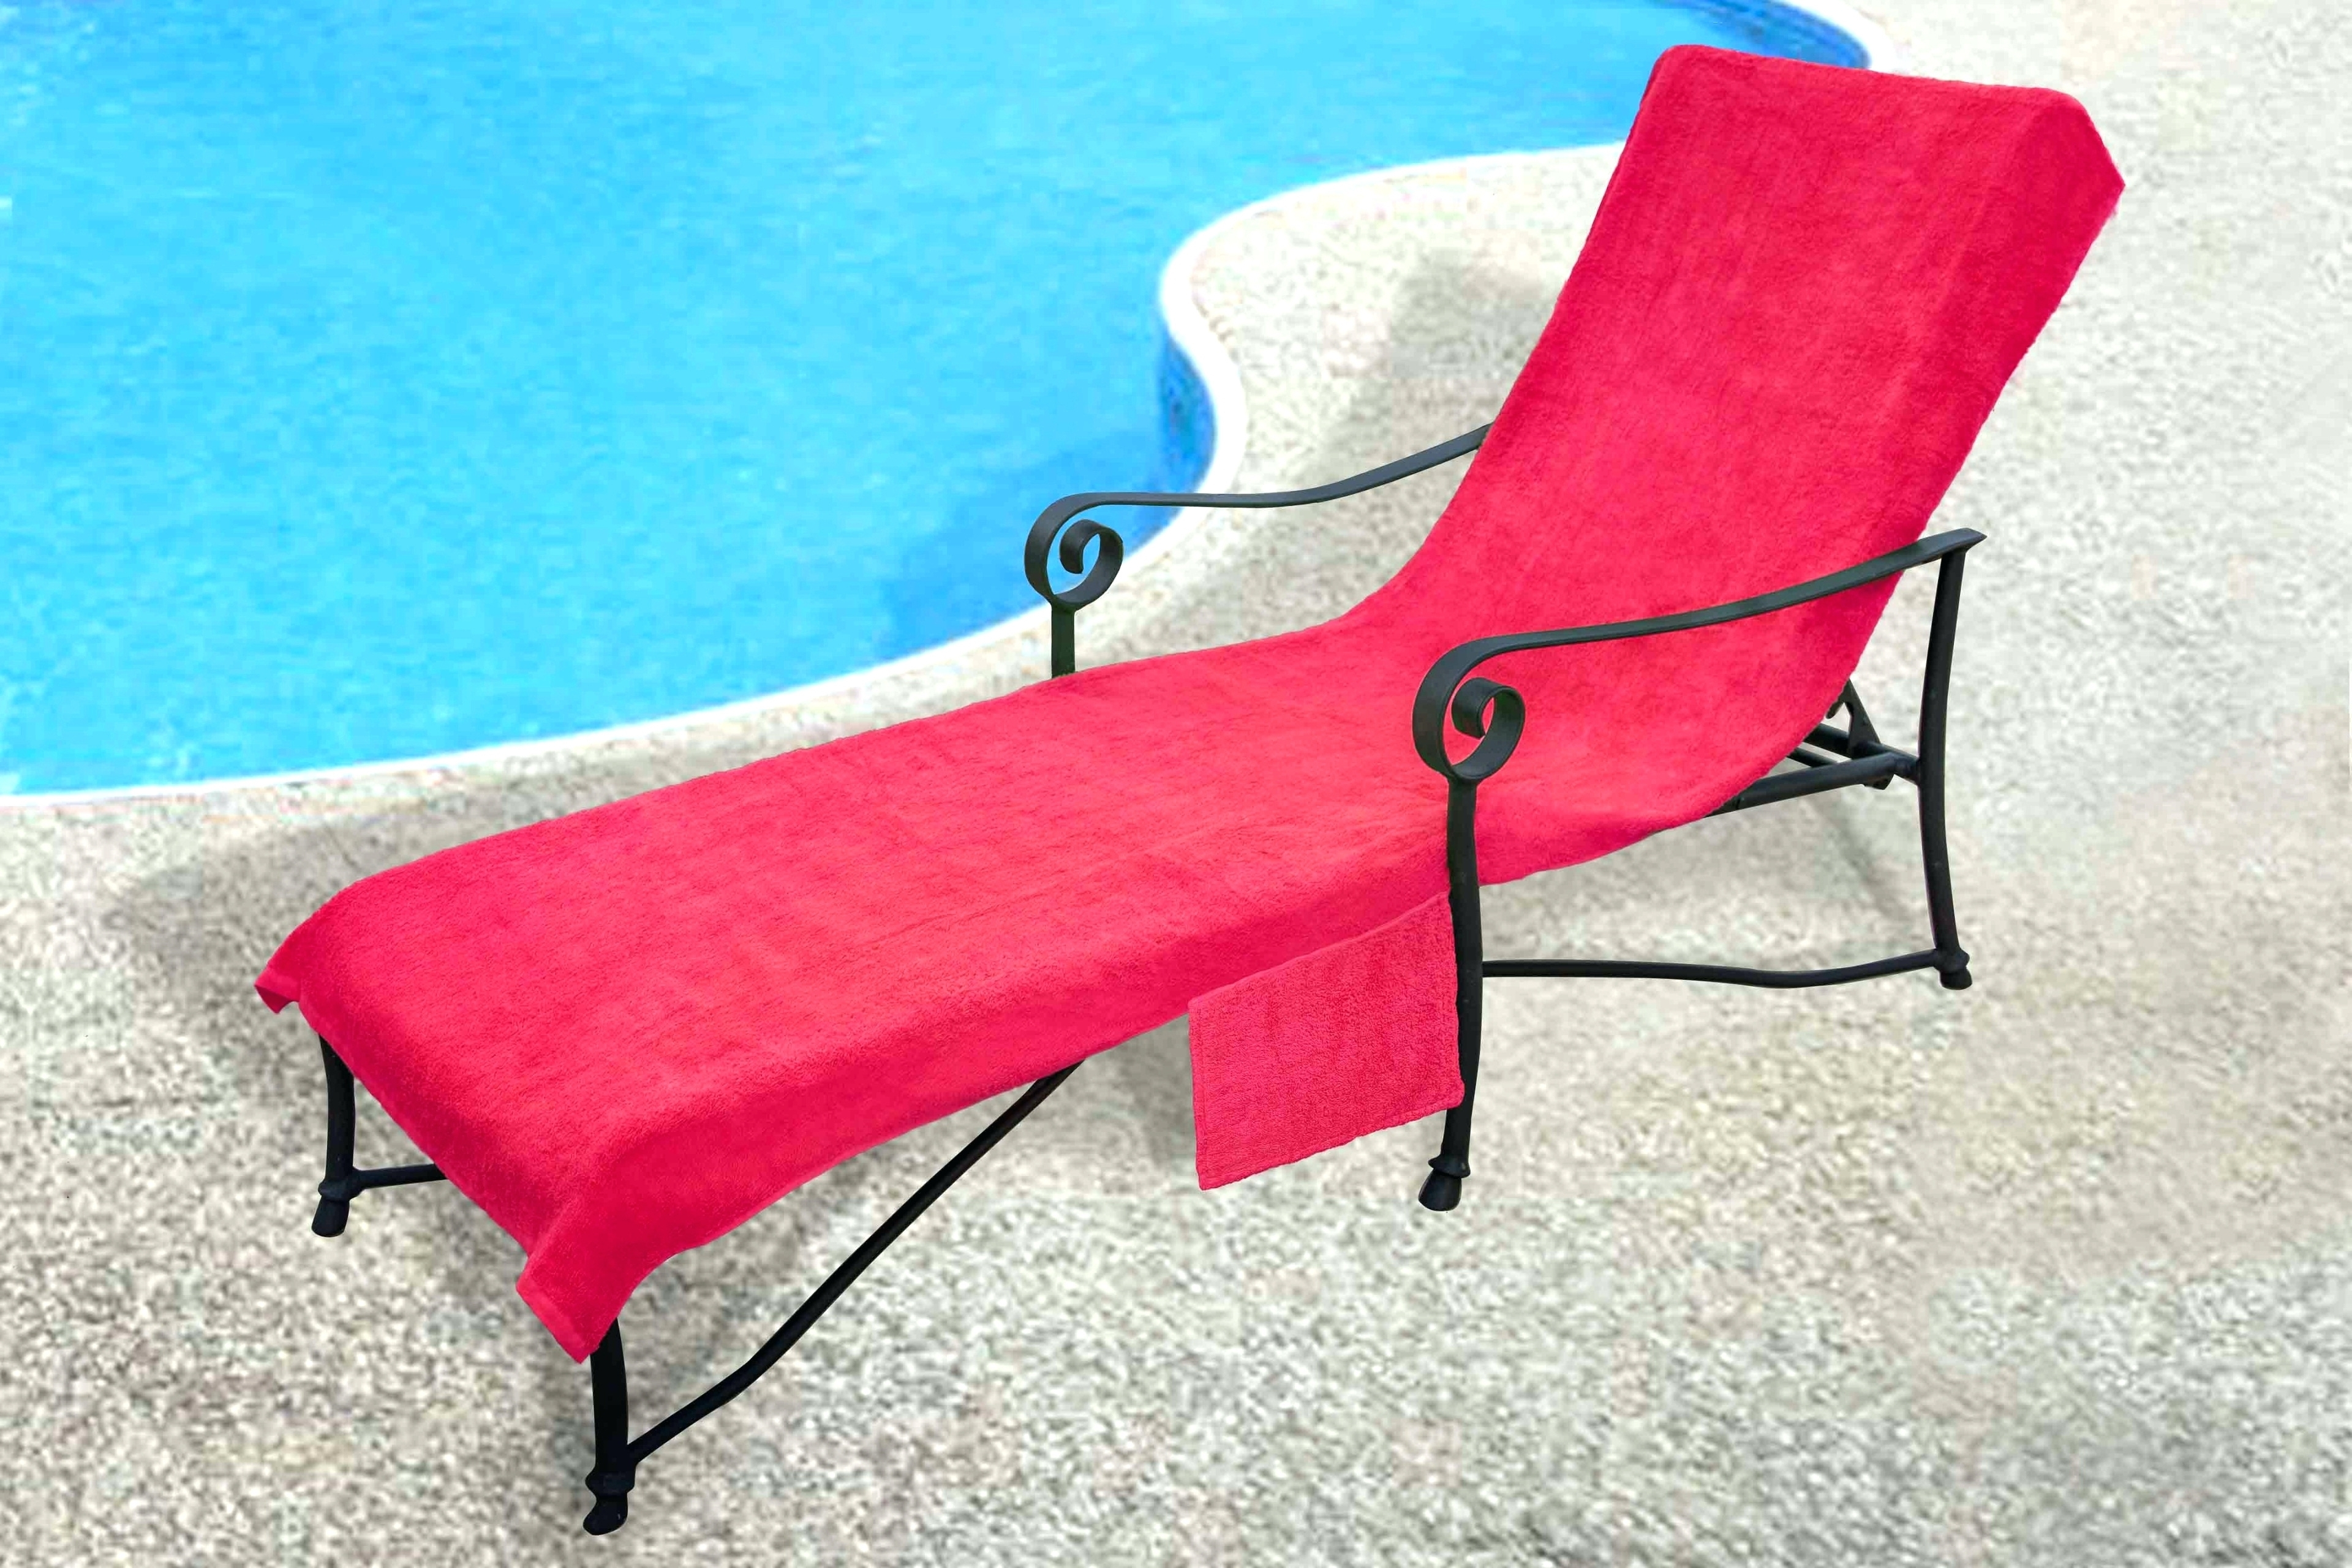 Covers For Chaise Lounge Chair Regarding Most Recent Bahama Beach Towel Chair Covers • Chair Covers Design (View 7 of 15)